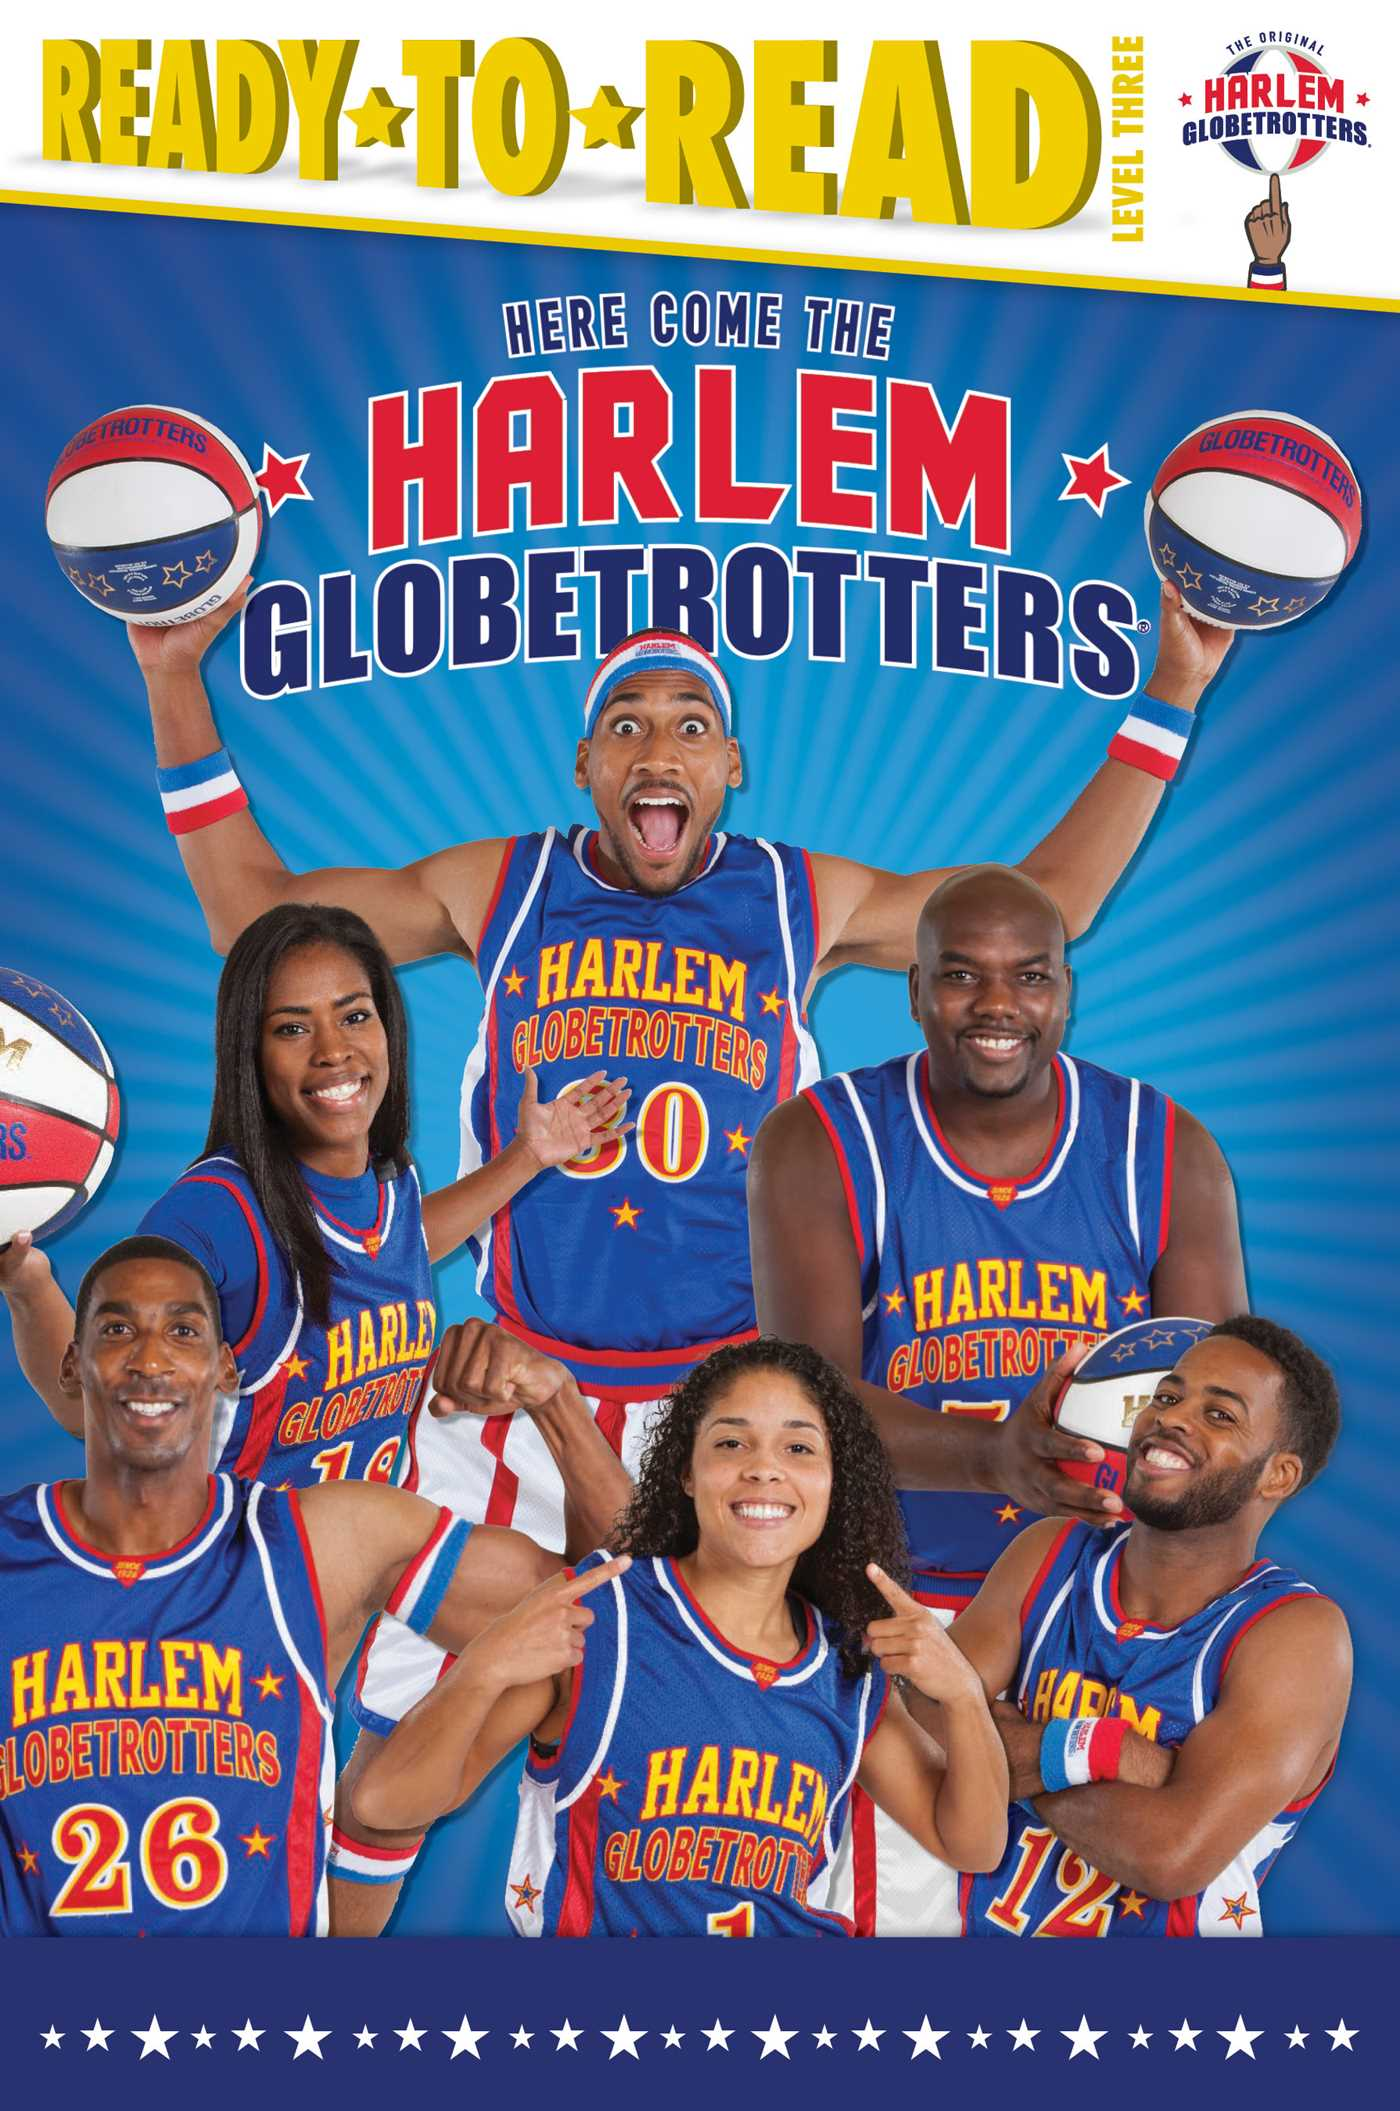 Here come the harlem globetrotters 9781481487474 hr